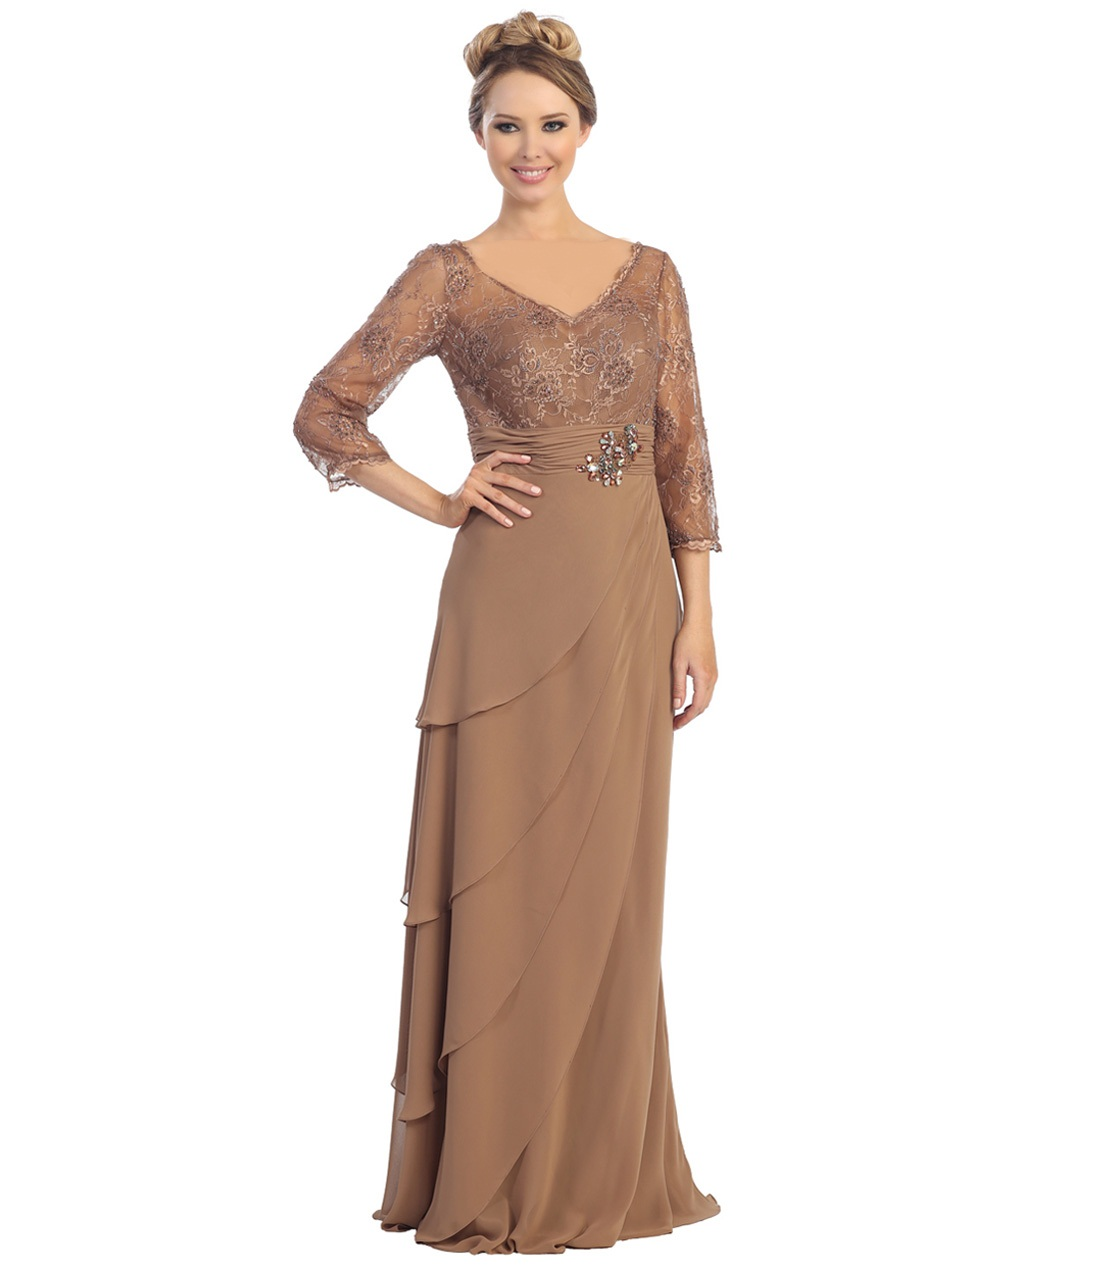 http://www.uplooder.net/img/image/79/59cccdb2b0a8df849b76fb2f436be452/cafe-chiffon-lace-long-sleeve-gown-40417larger.jpg